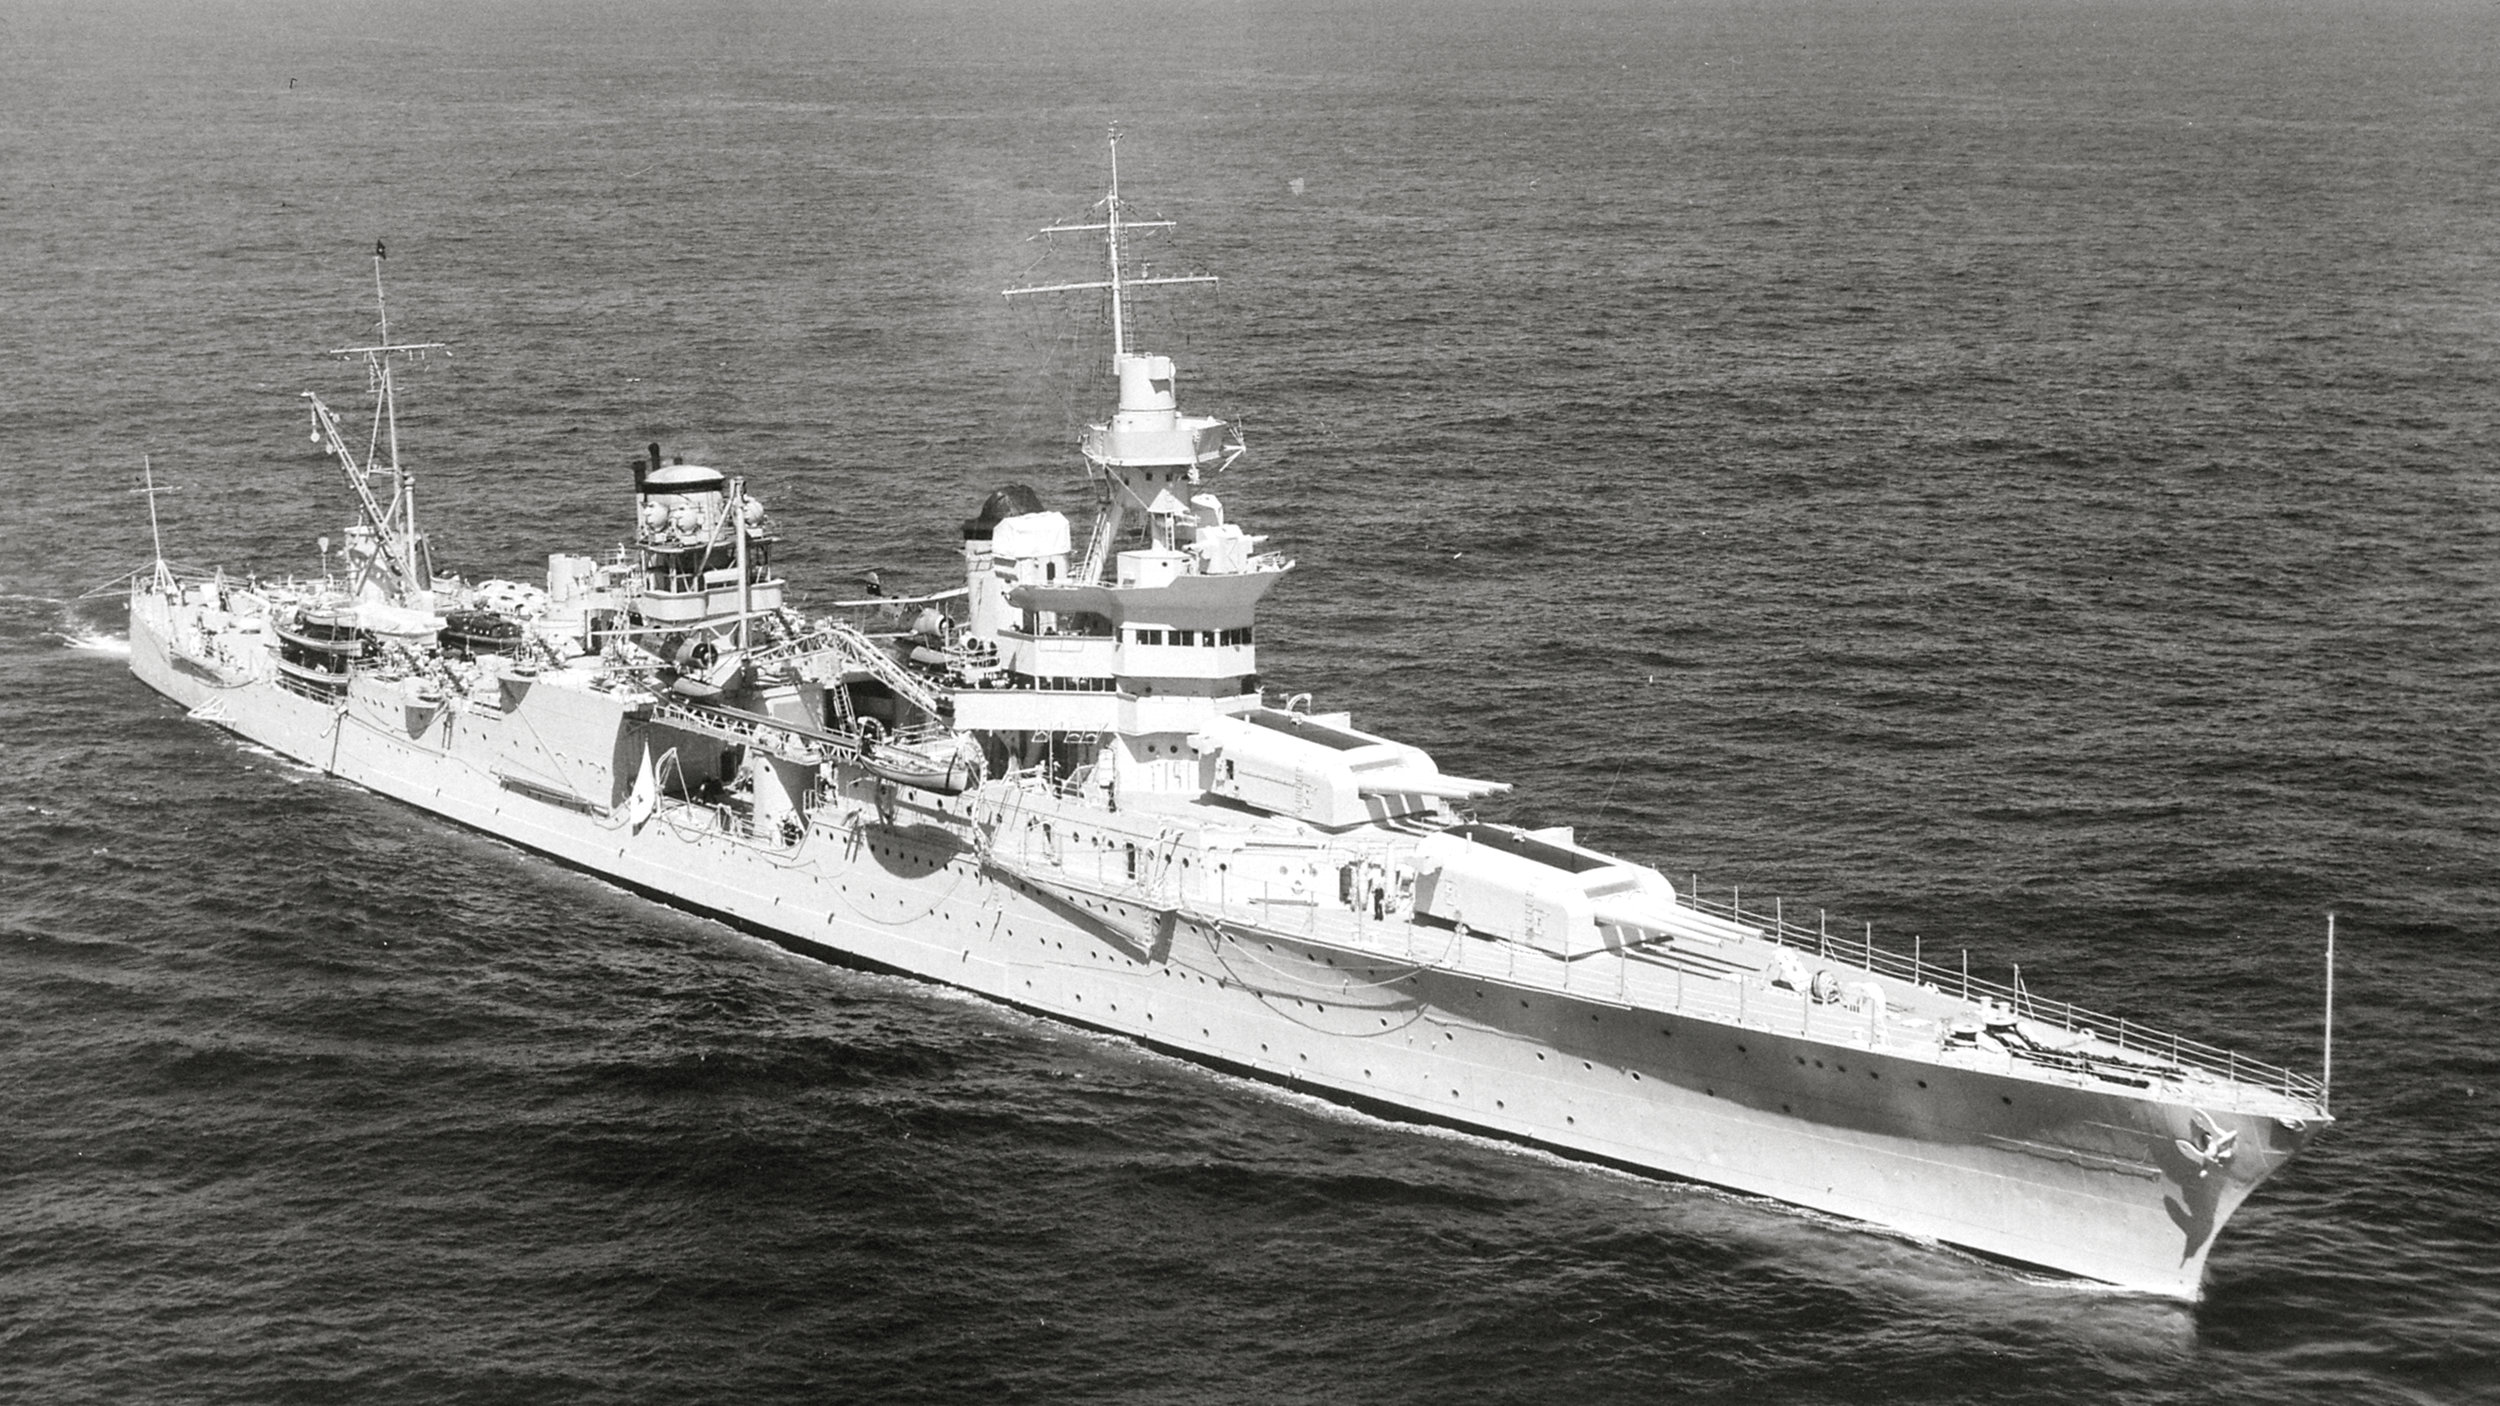 USS_Indianapolis_(CA-35)_underway_at_sea_on_27_September_1939_(80-G-425615).jpg